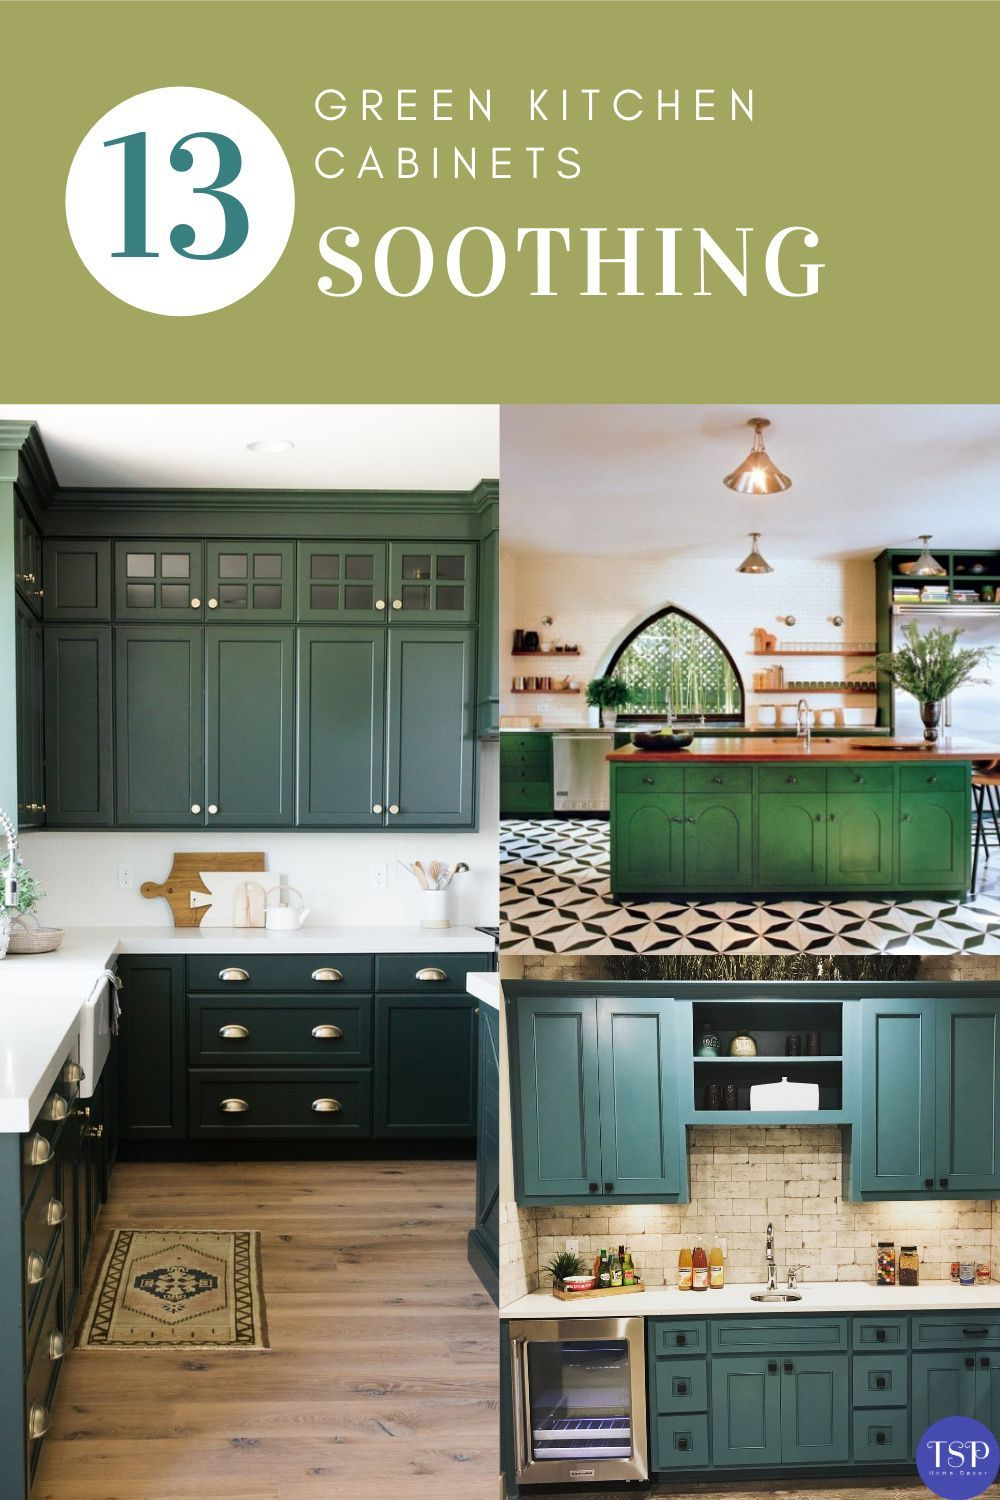 13 Green Kitchen Cabinets Design That Will Change Your State Of